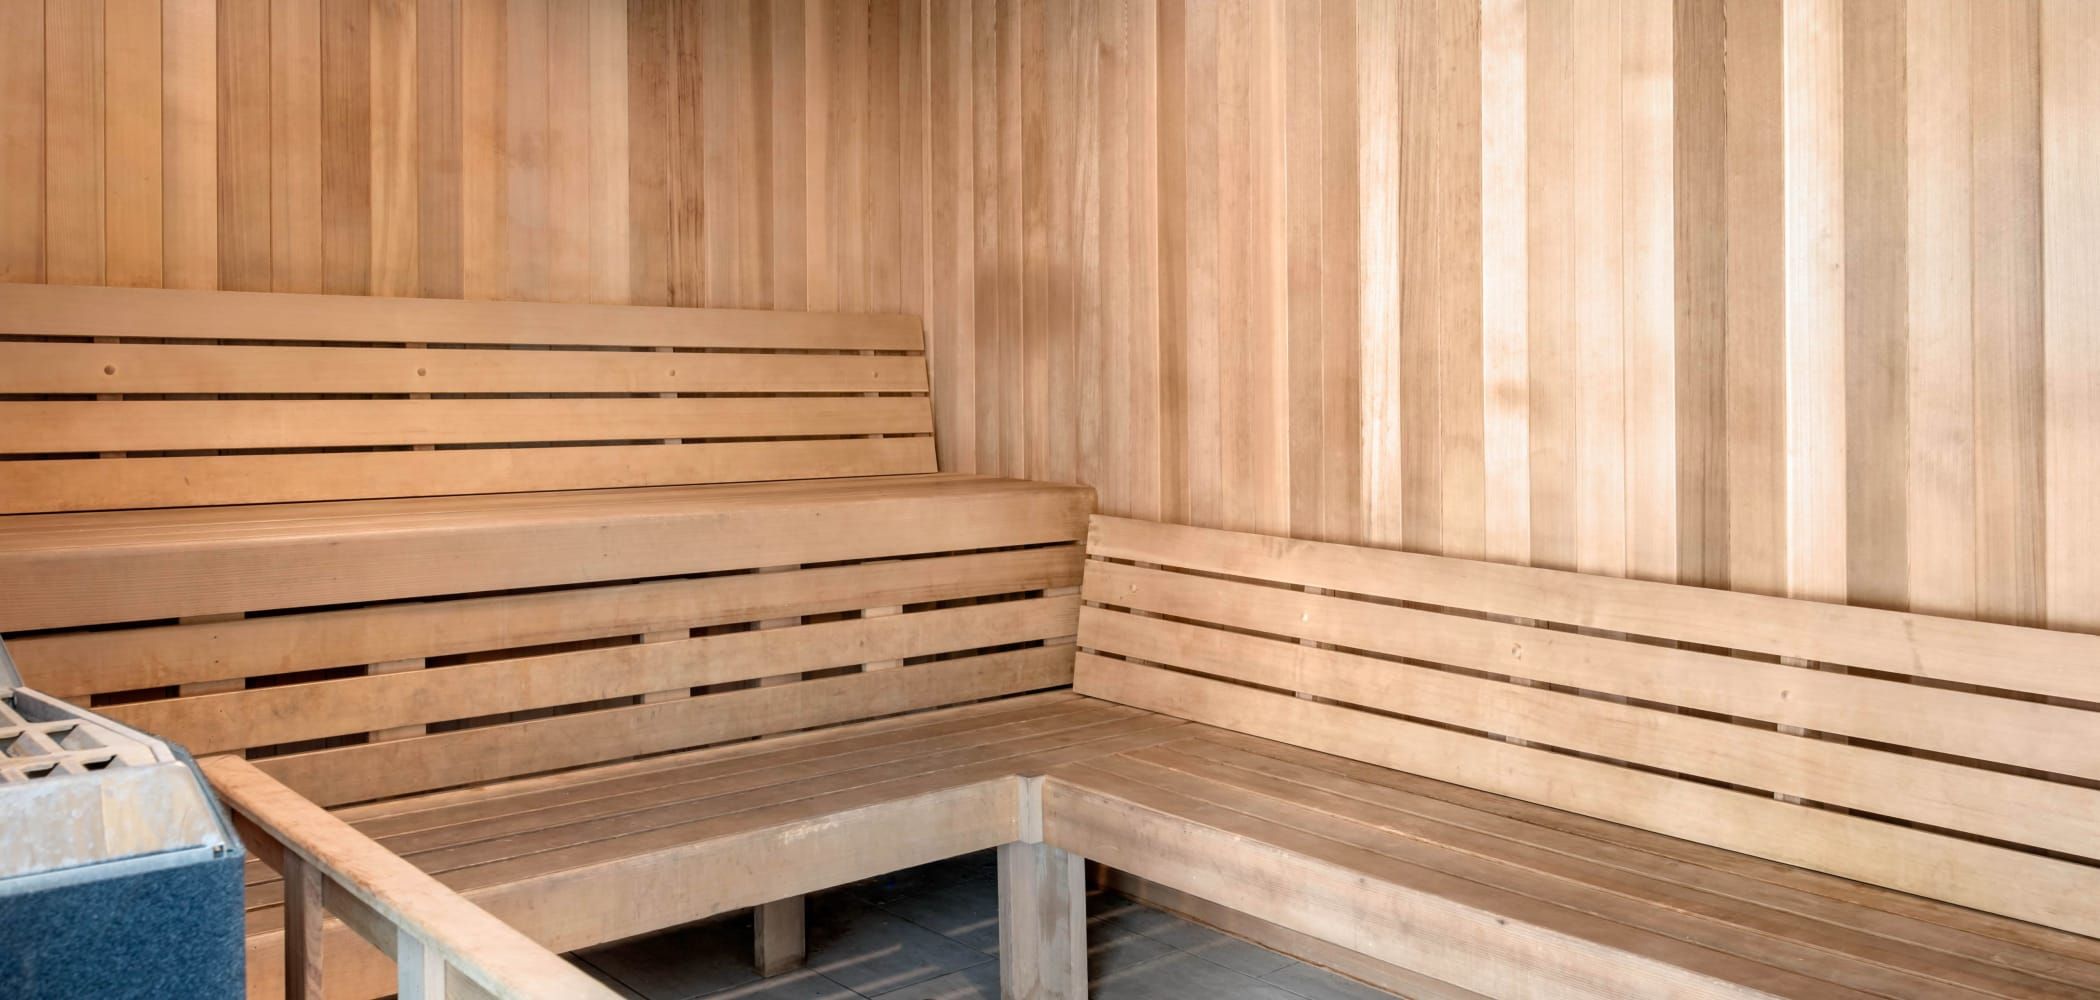 Sauna at Onyx in Tallahassee, Florida